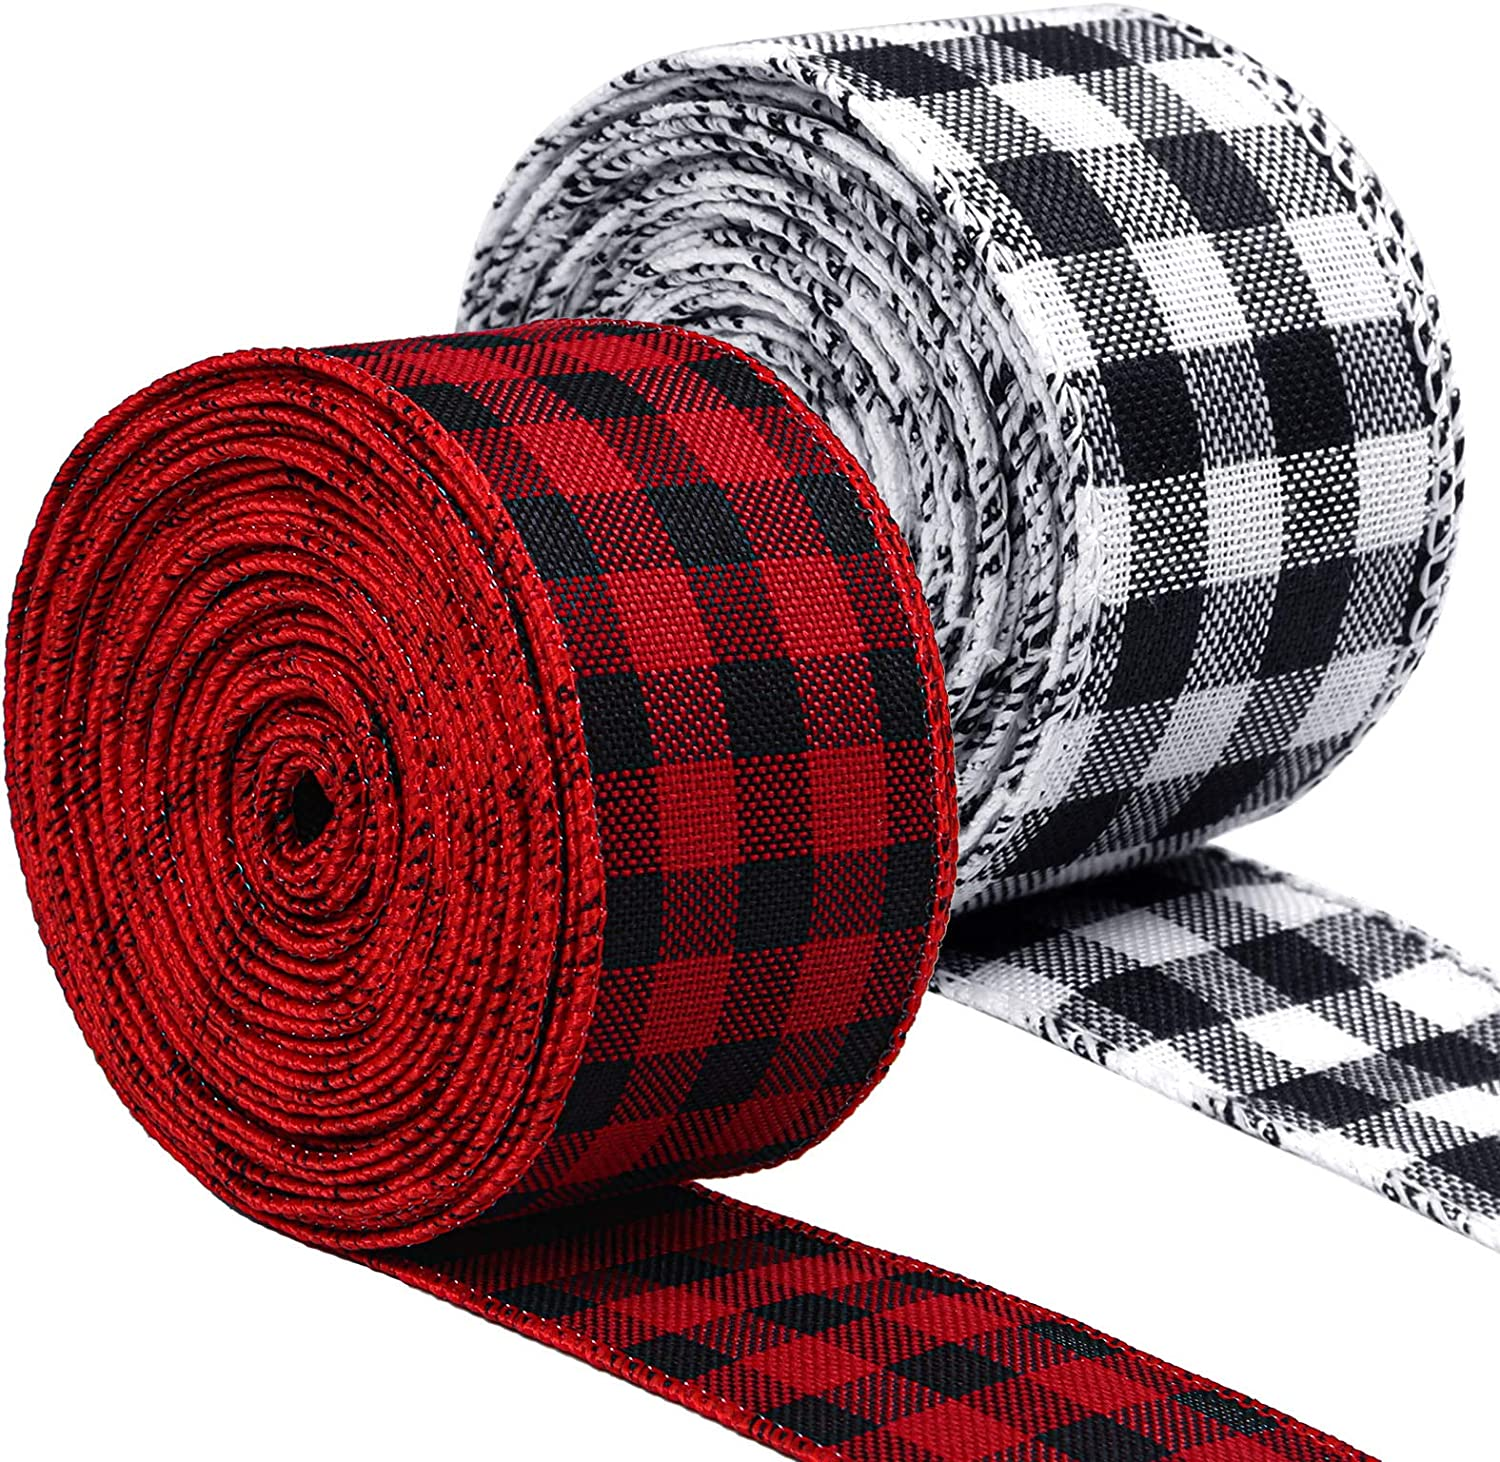 URATOT 2 Rolls Denver Mall Plaid Burlap Christmas Wired Wrappi Ribbon Credence